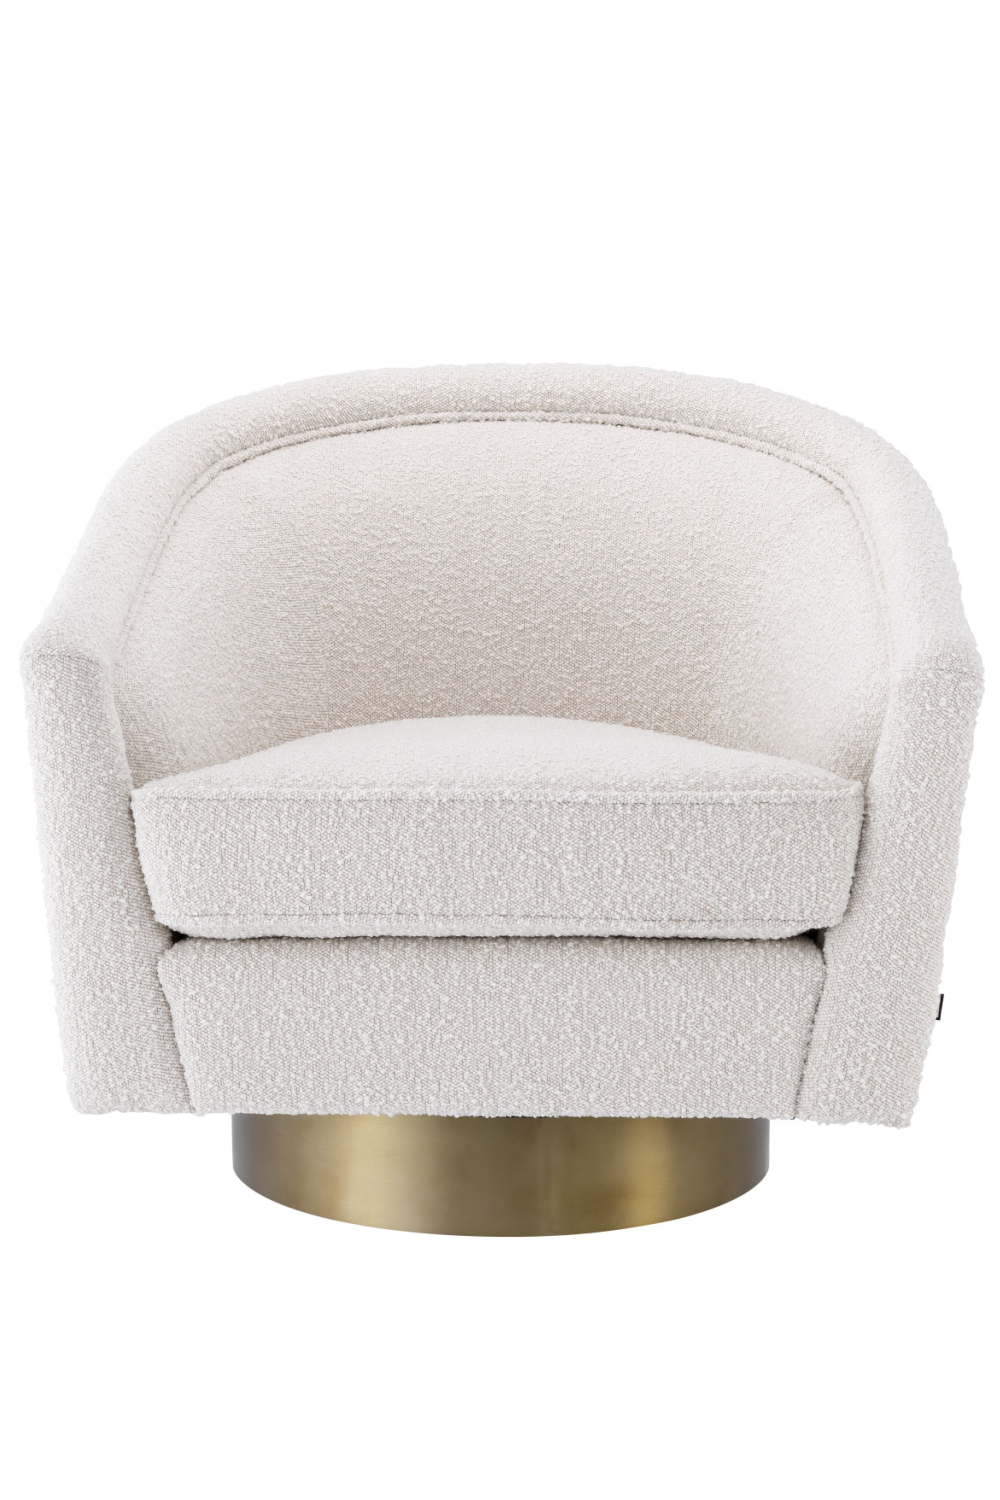 Bouclé Swivel Barrel Chair | Eichholtz Catene | #1 Eichholtz Retailer